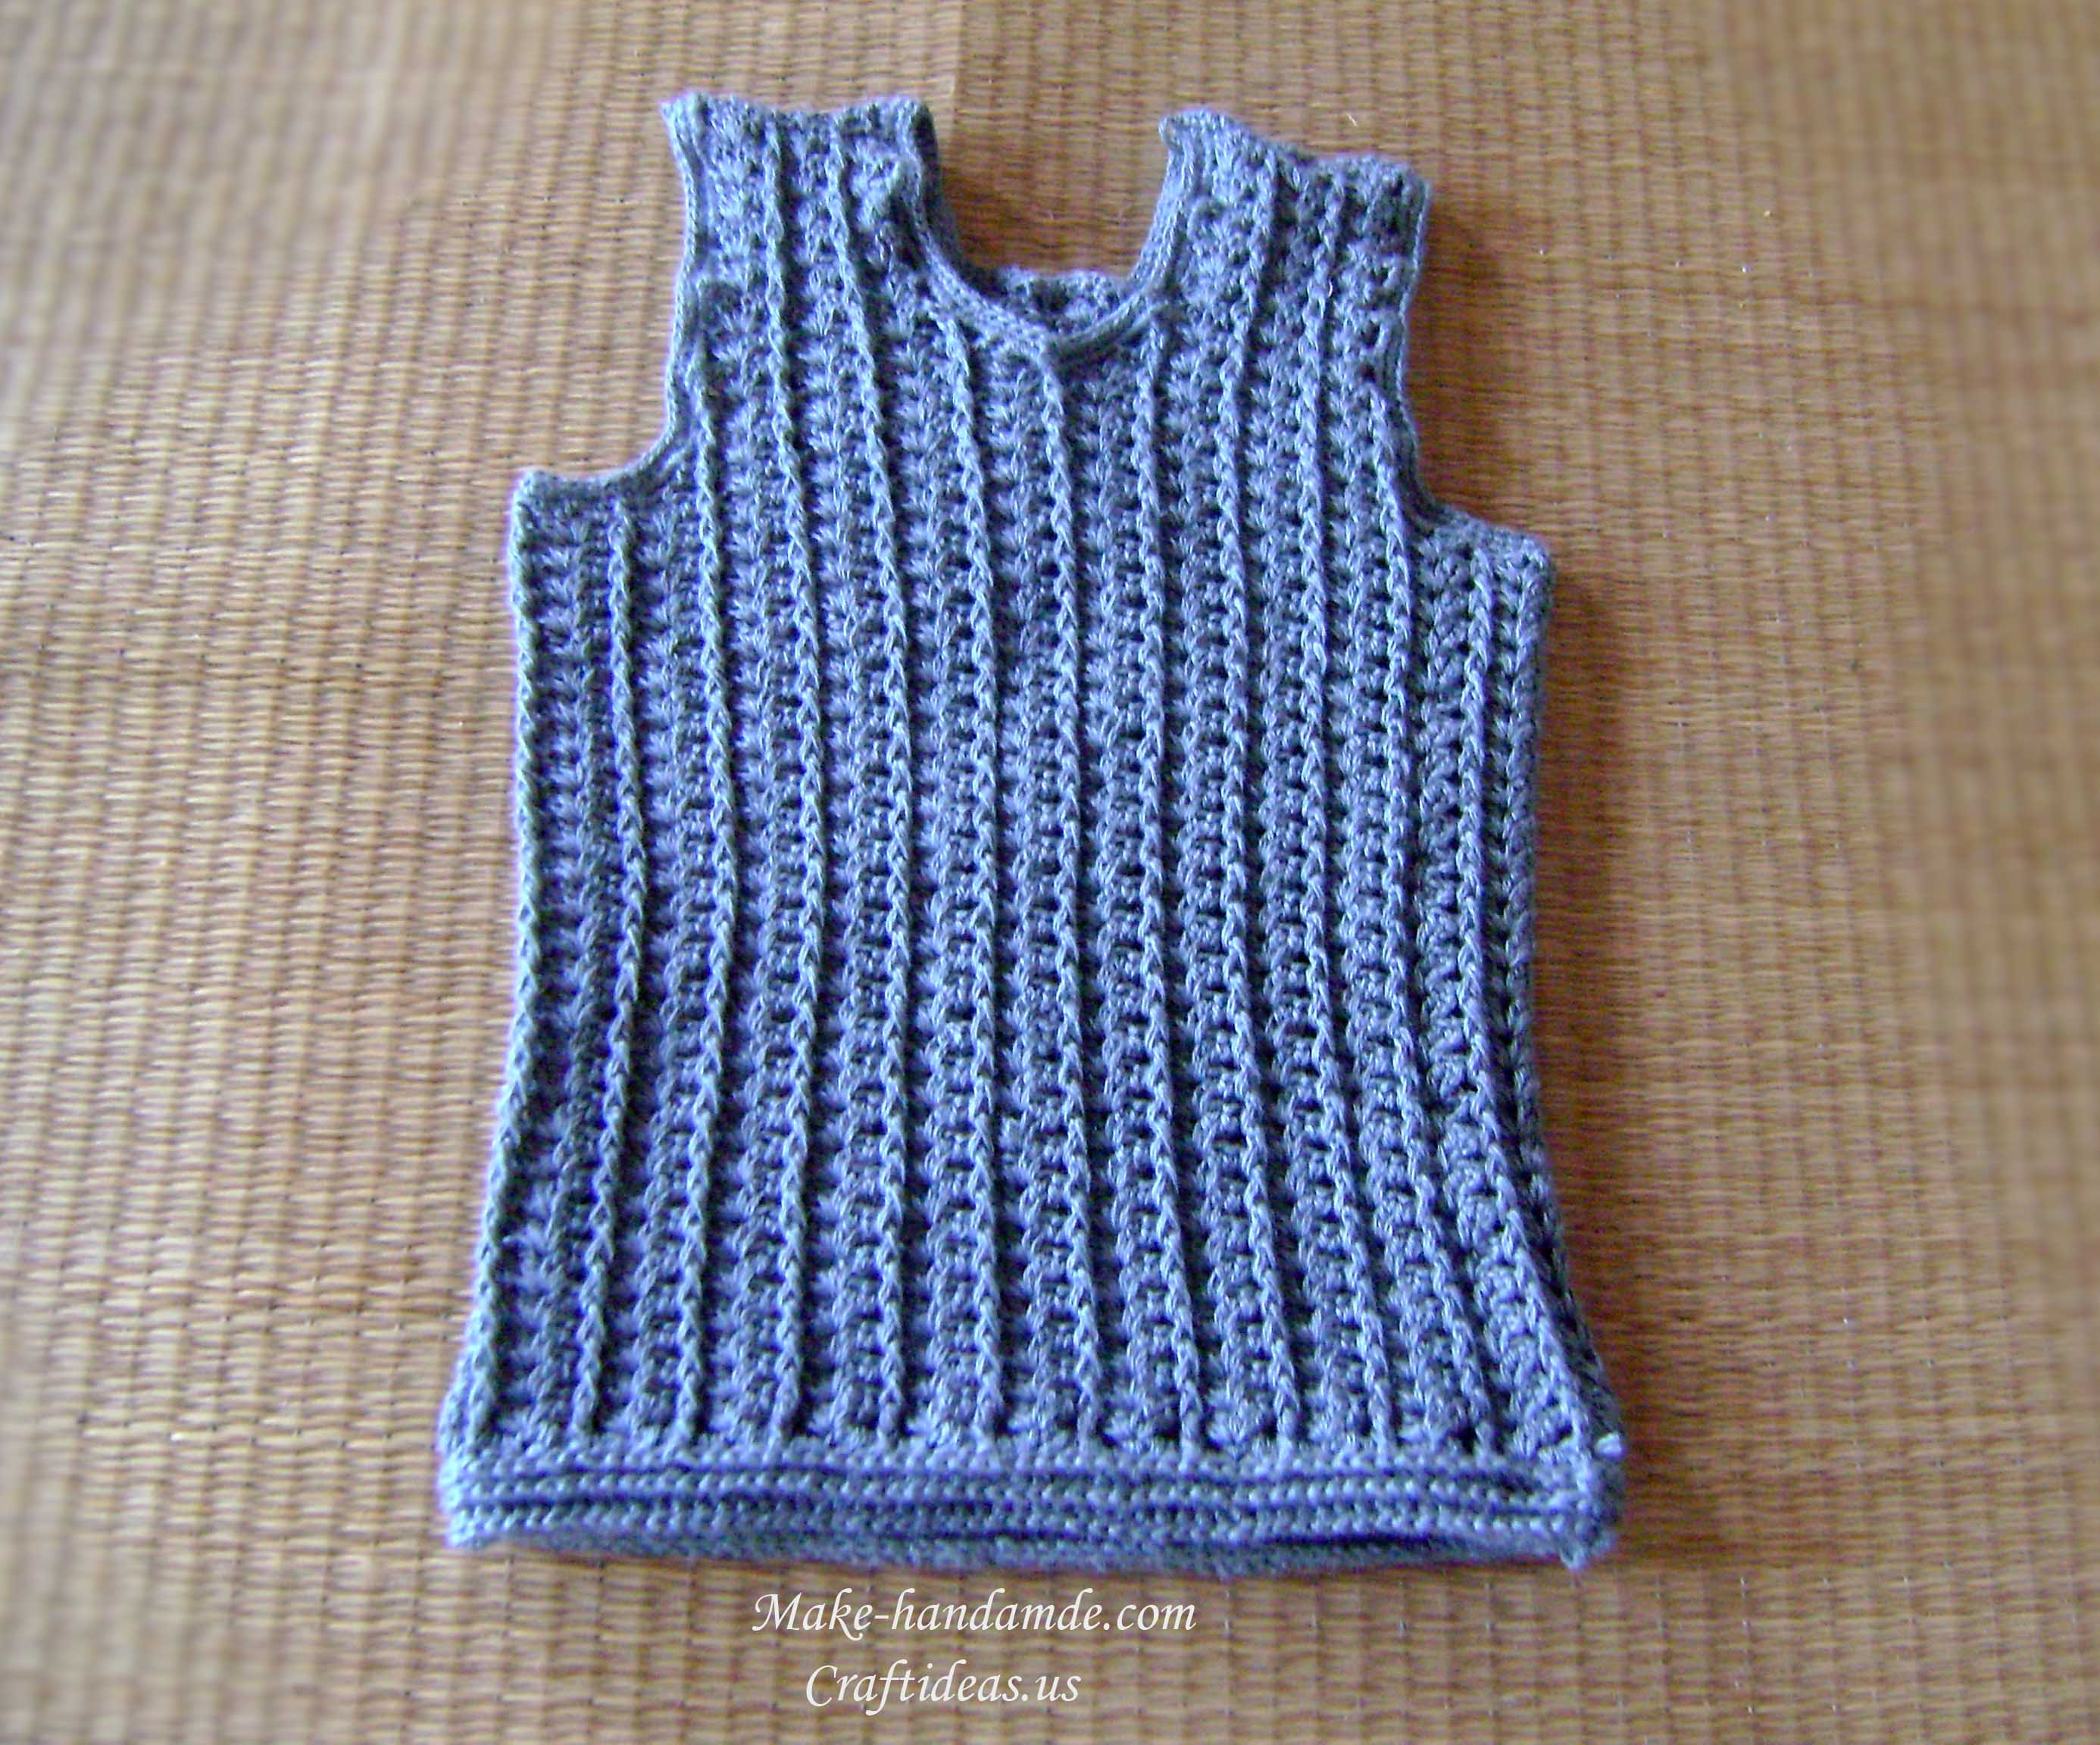 Crochet cute baby boy vest - Craft Ideas